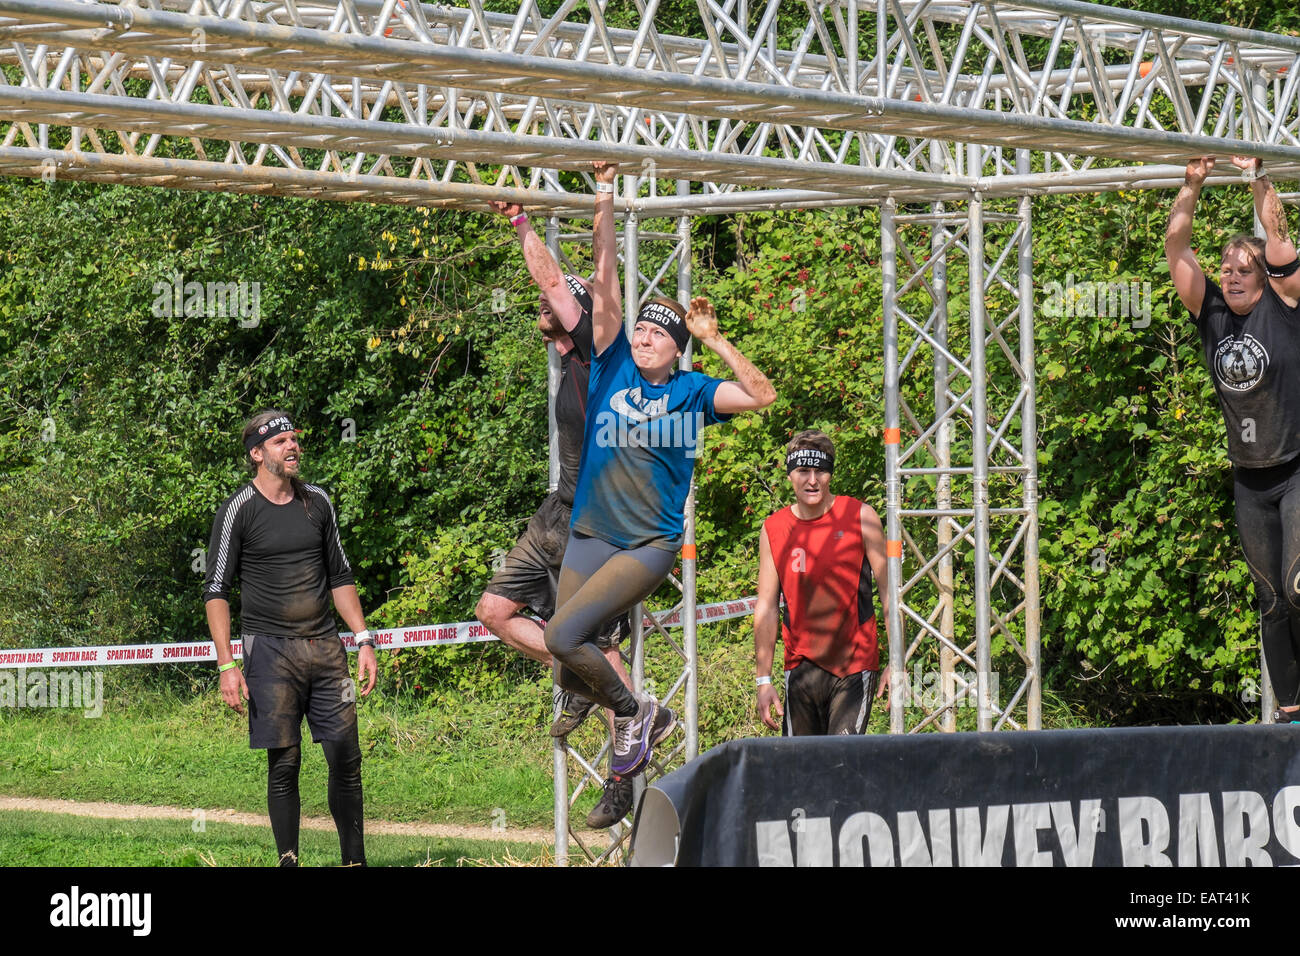 Competitors traversing Monkey bars obstacle Spartan race Milton country park - Stock Image